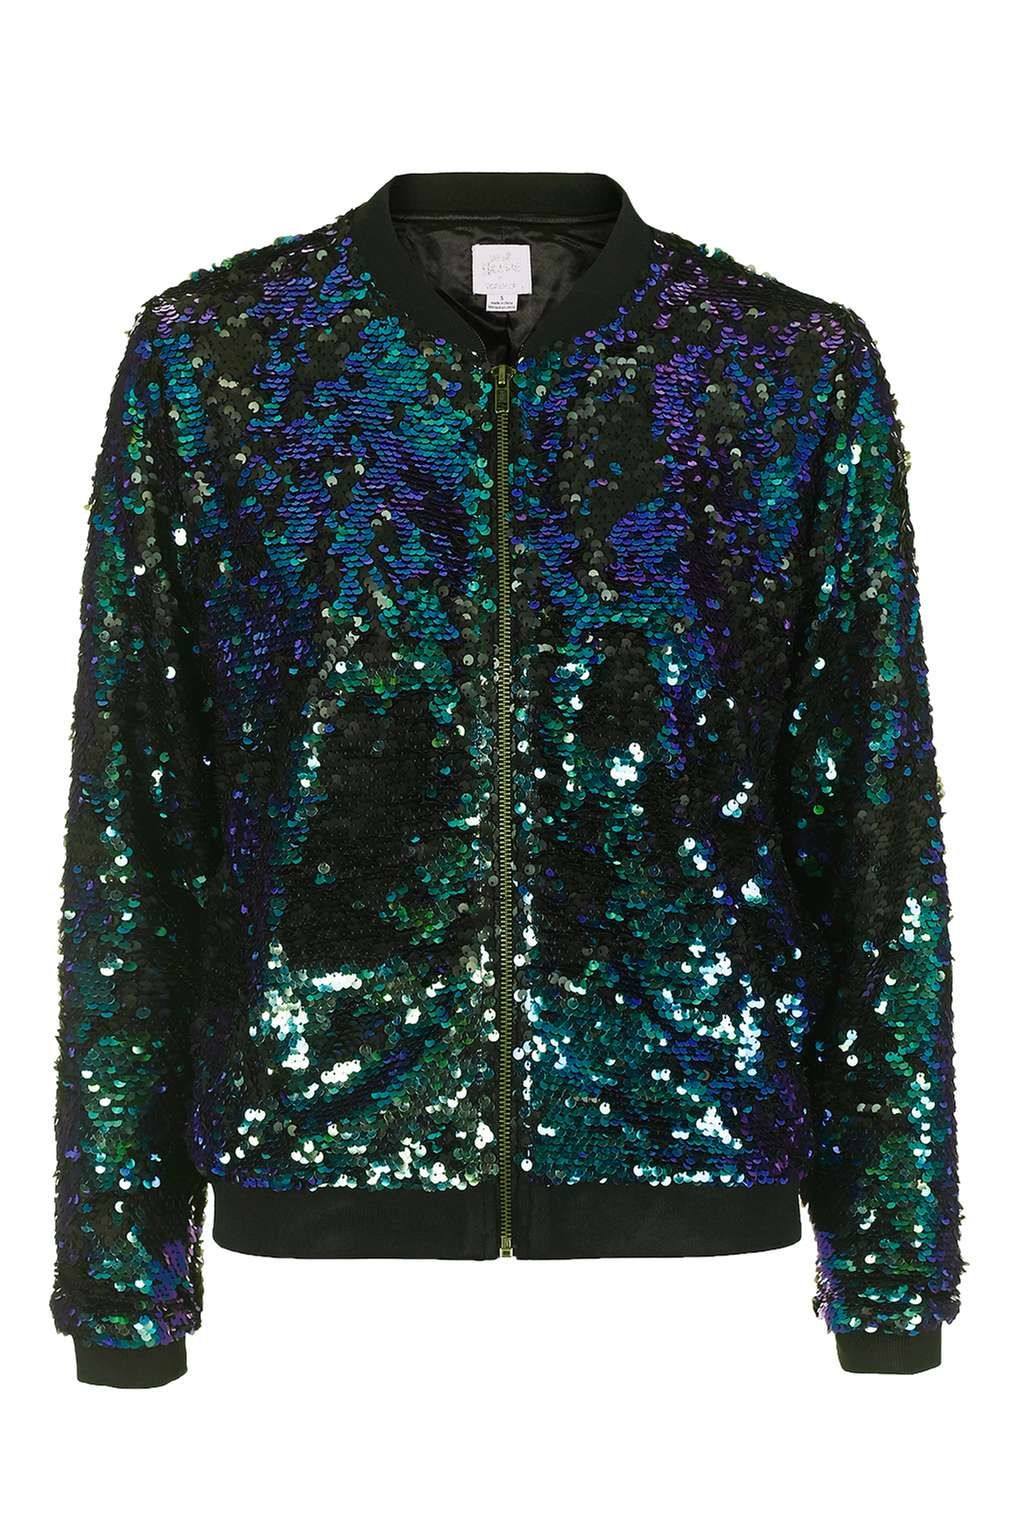 Sequin Bomber Jacket by We All Shine - Clothing  4fb08f90755